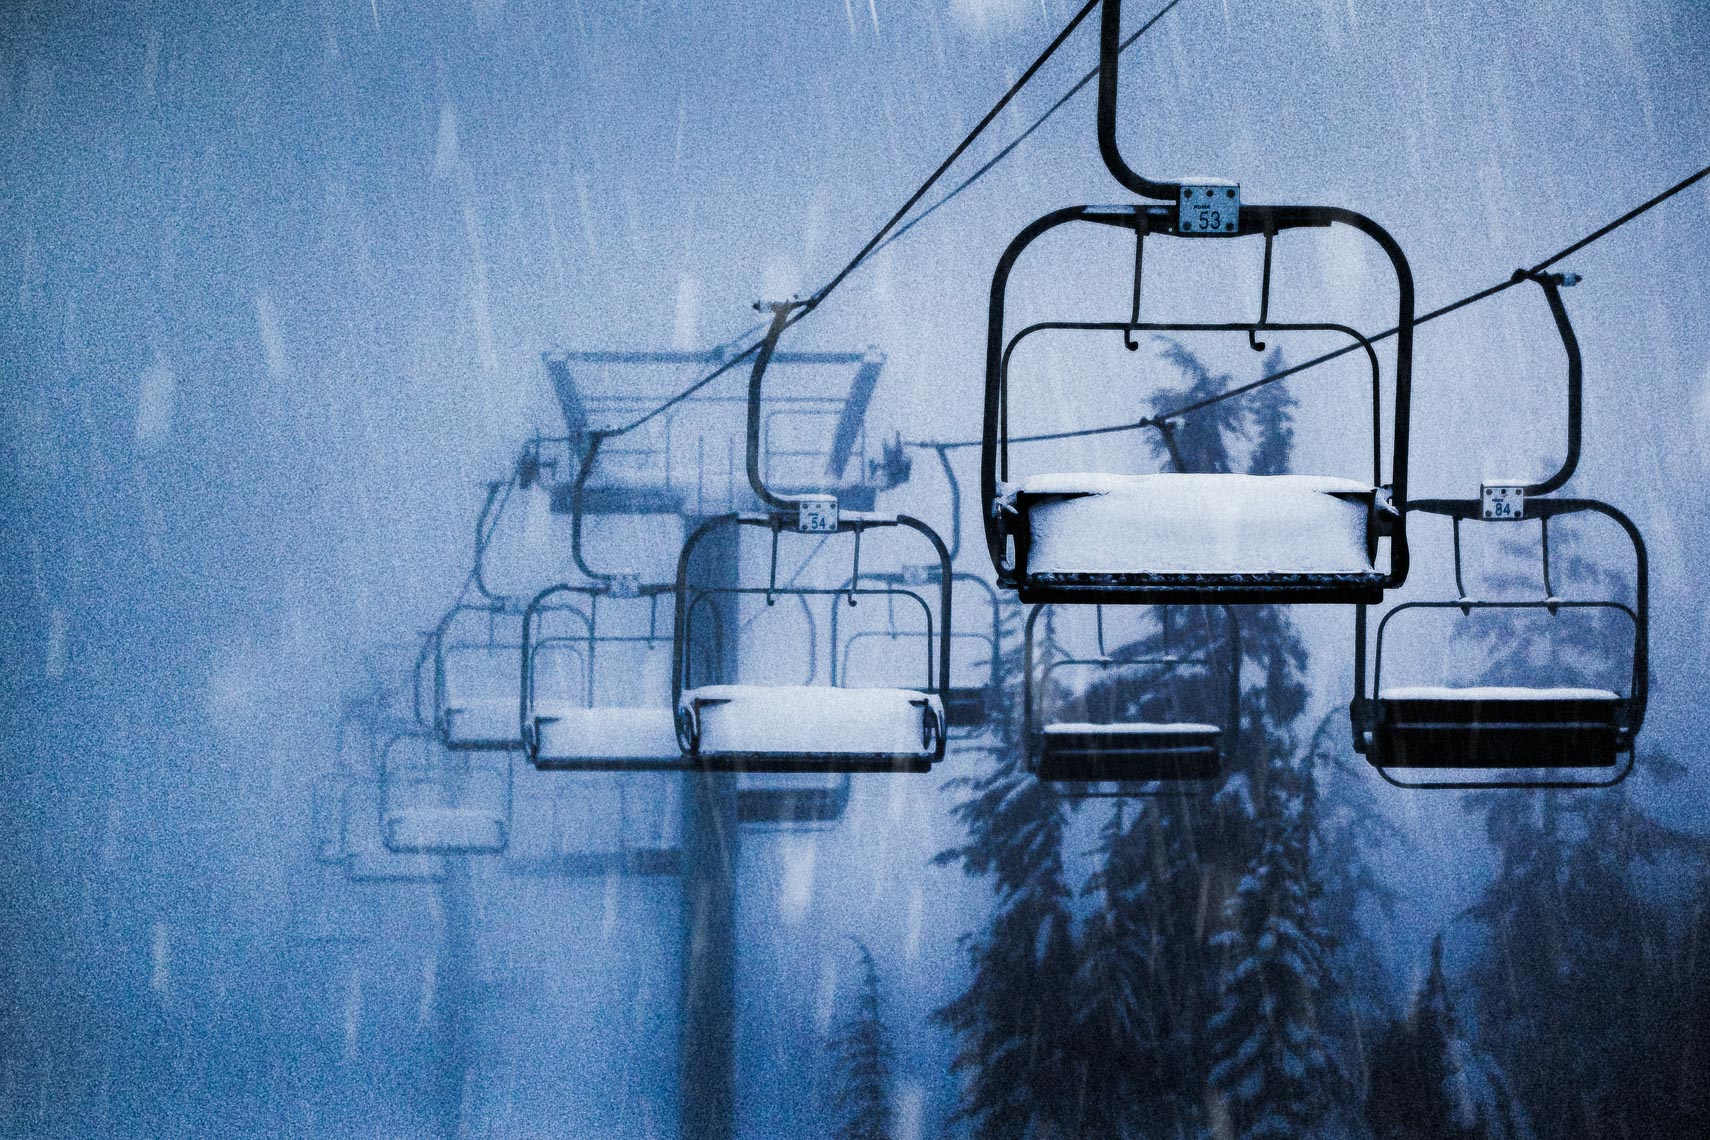 Snowy ski lifts in the winter